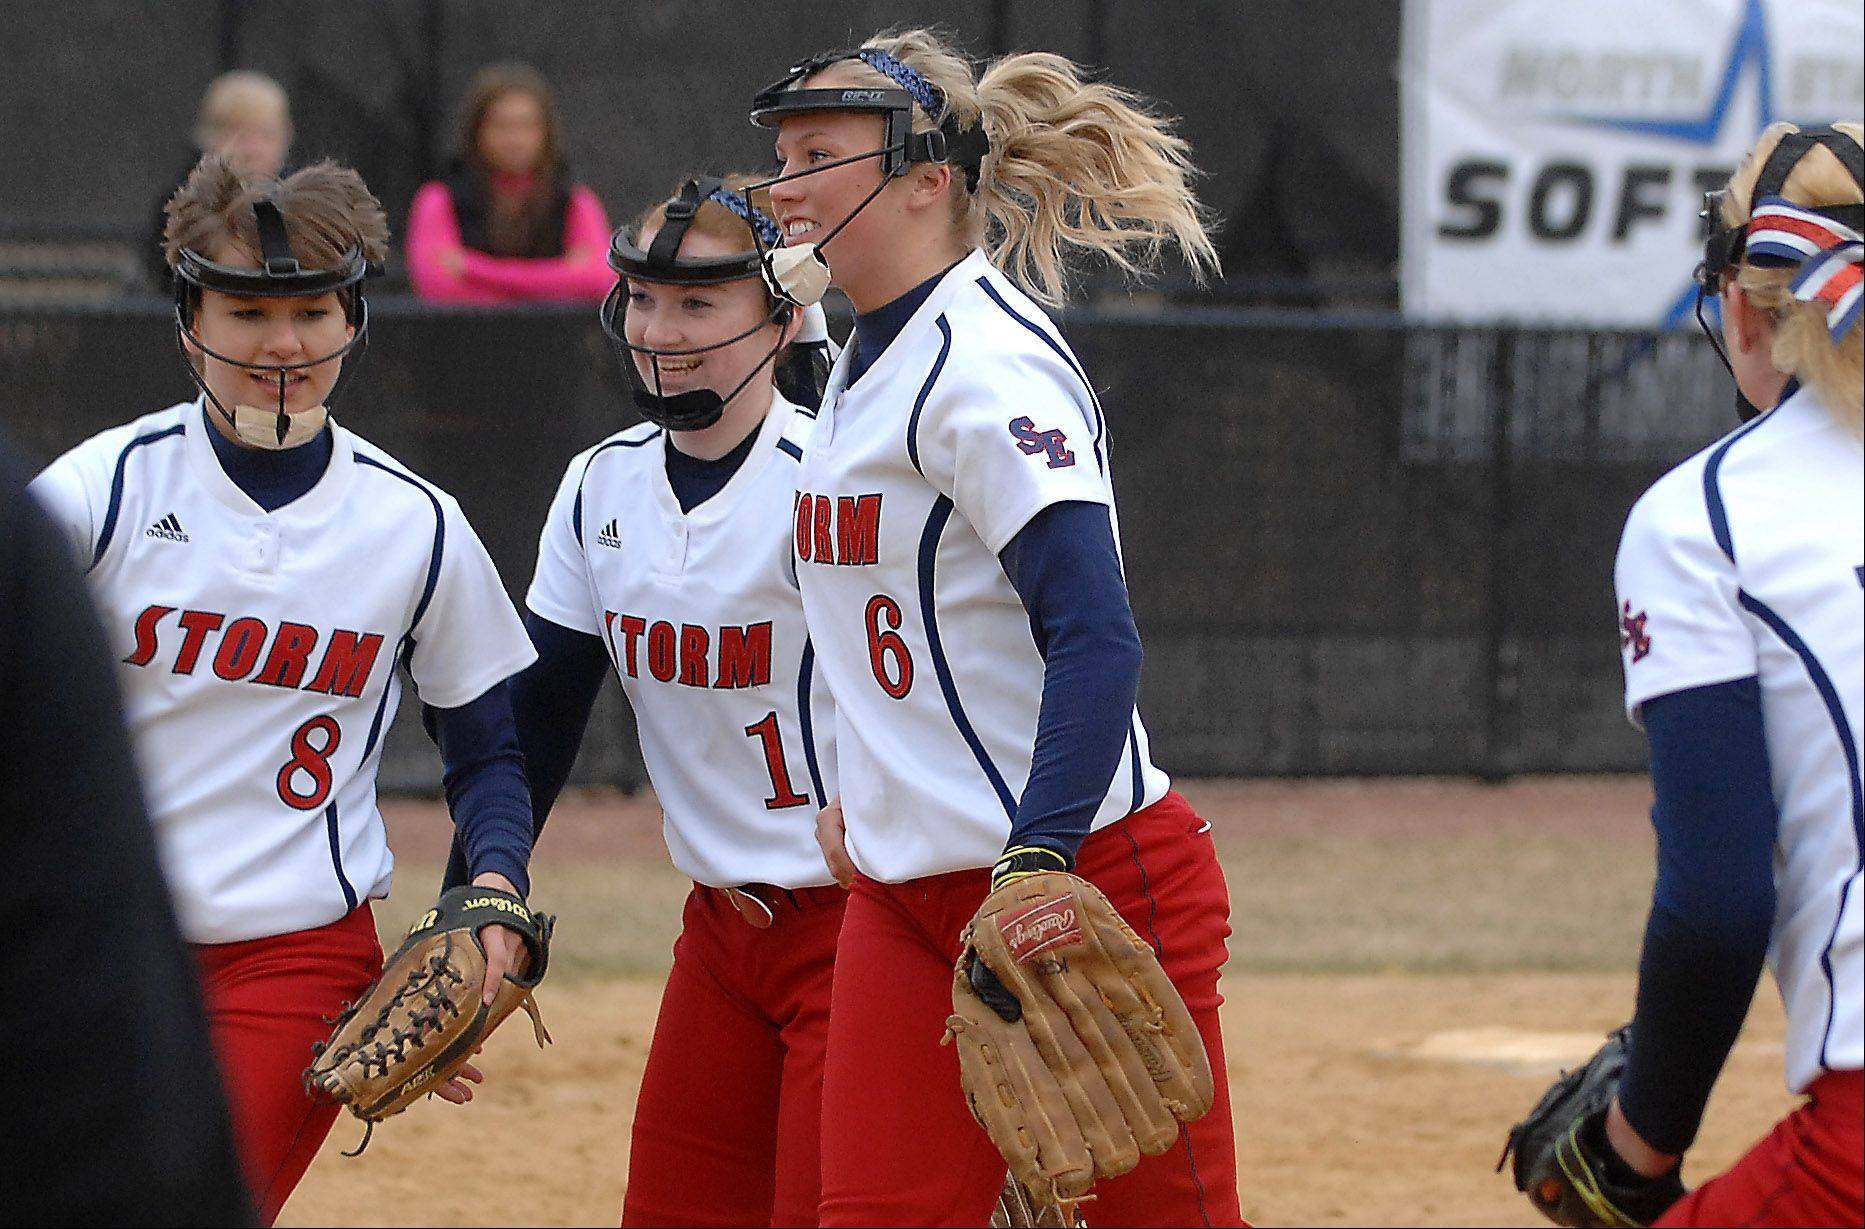 South Elgin's Victoria Watt (8), Paige Allen (1) and Kara Rodriguez (6) are all smiles after the Storm recorded the final out to beat St. Charles North during Friday's game in St. Charles.